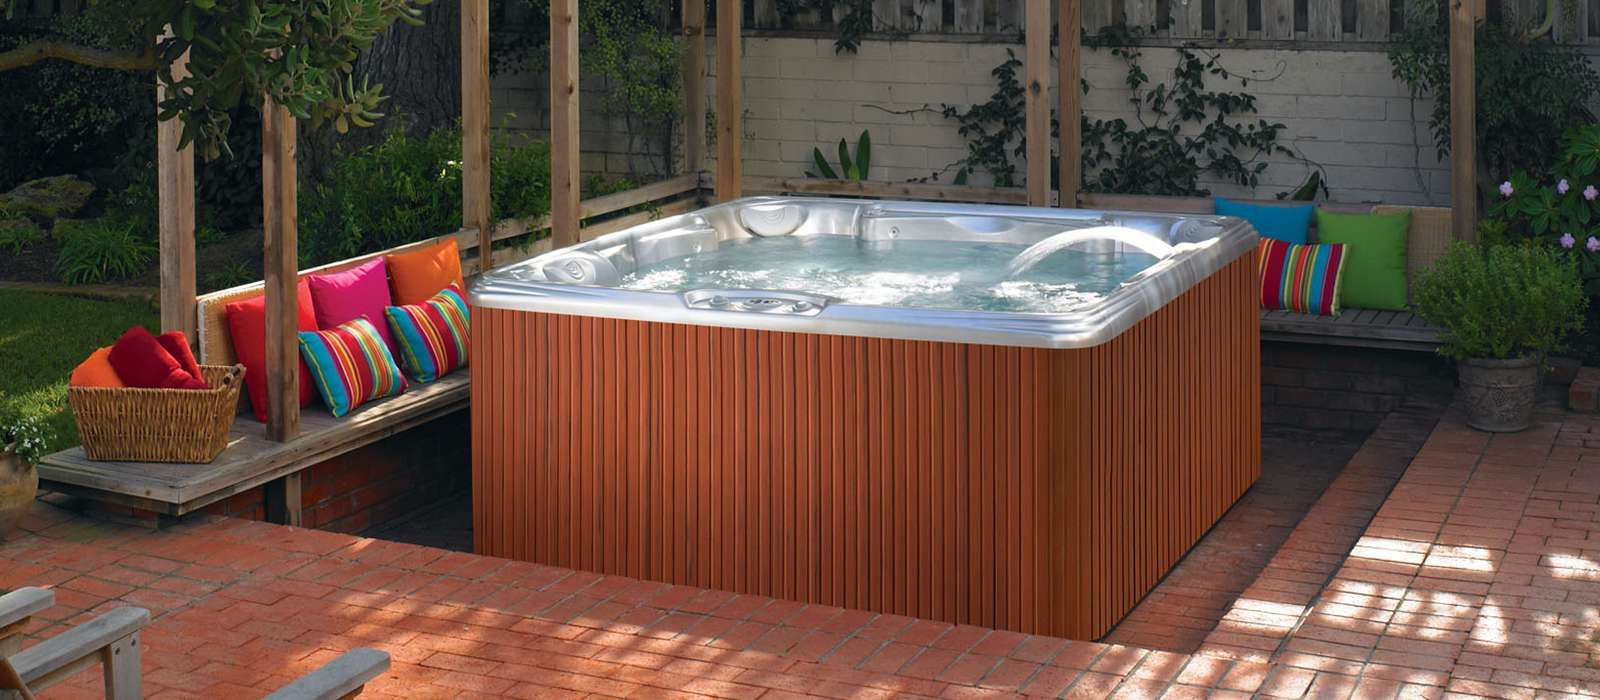 Patio Hot Tub Ideas Backyard Hardscape Hot Tub Designs